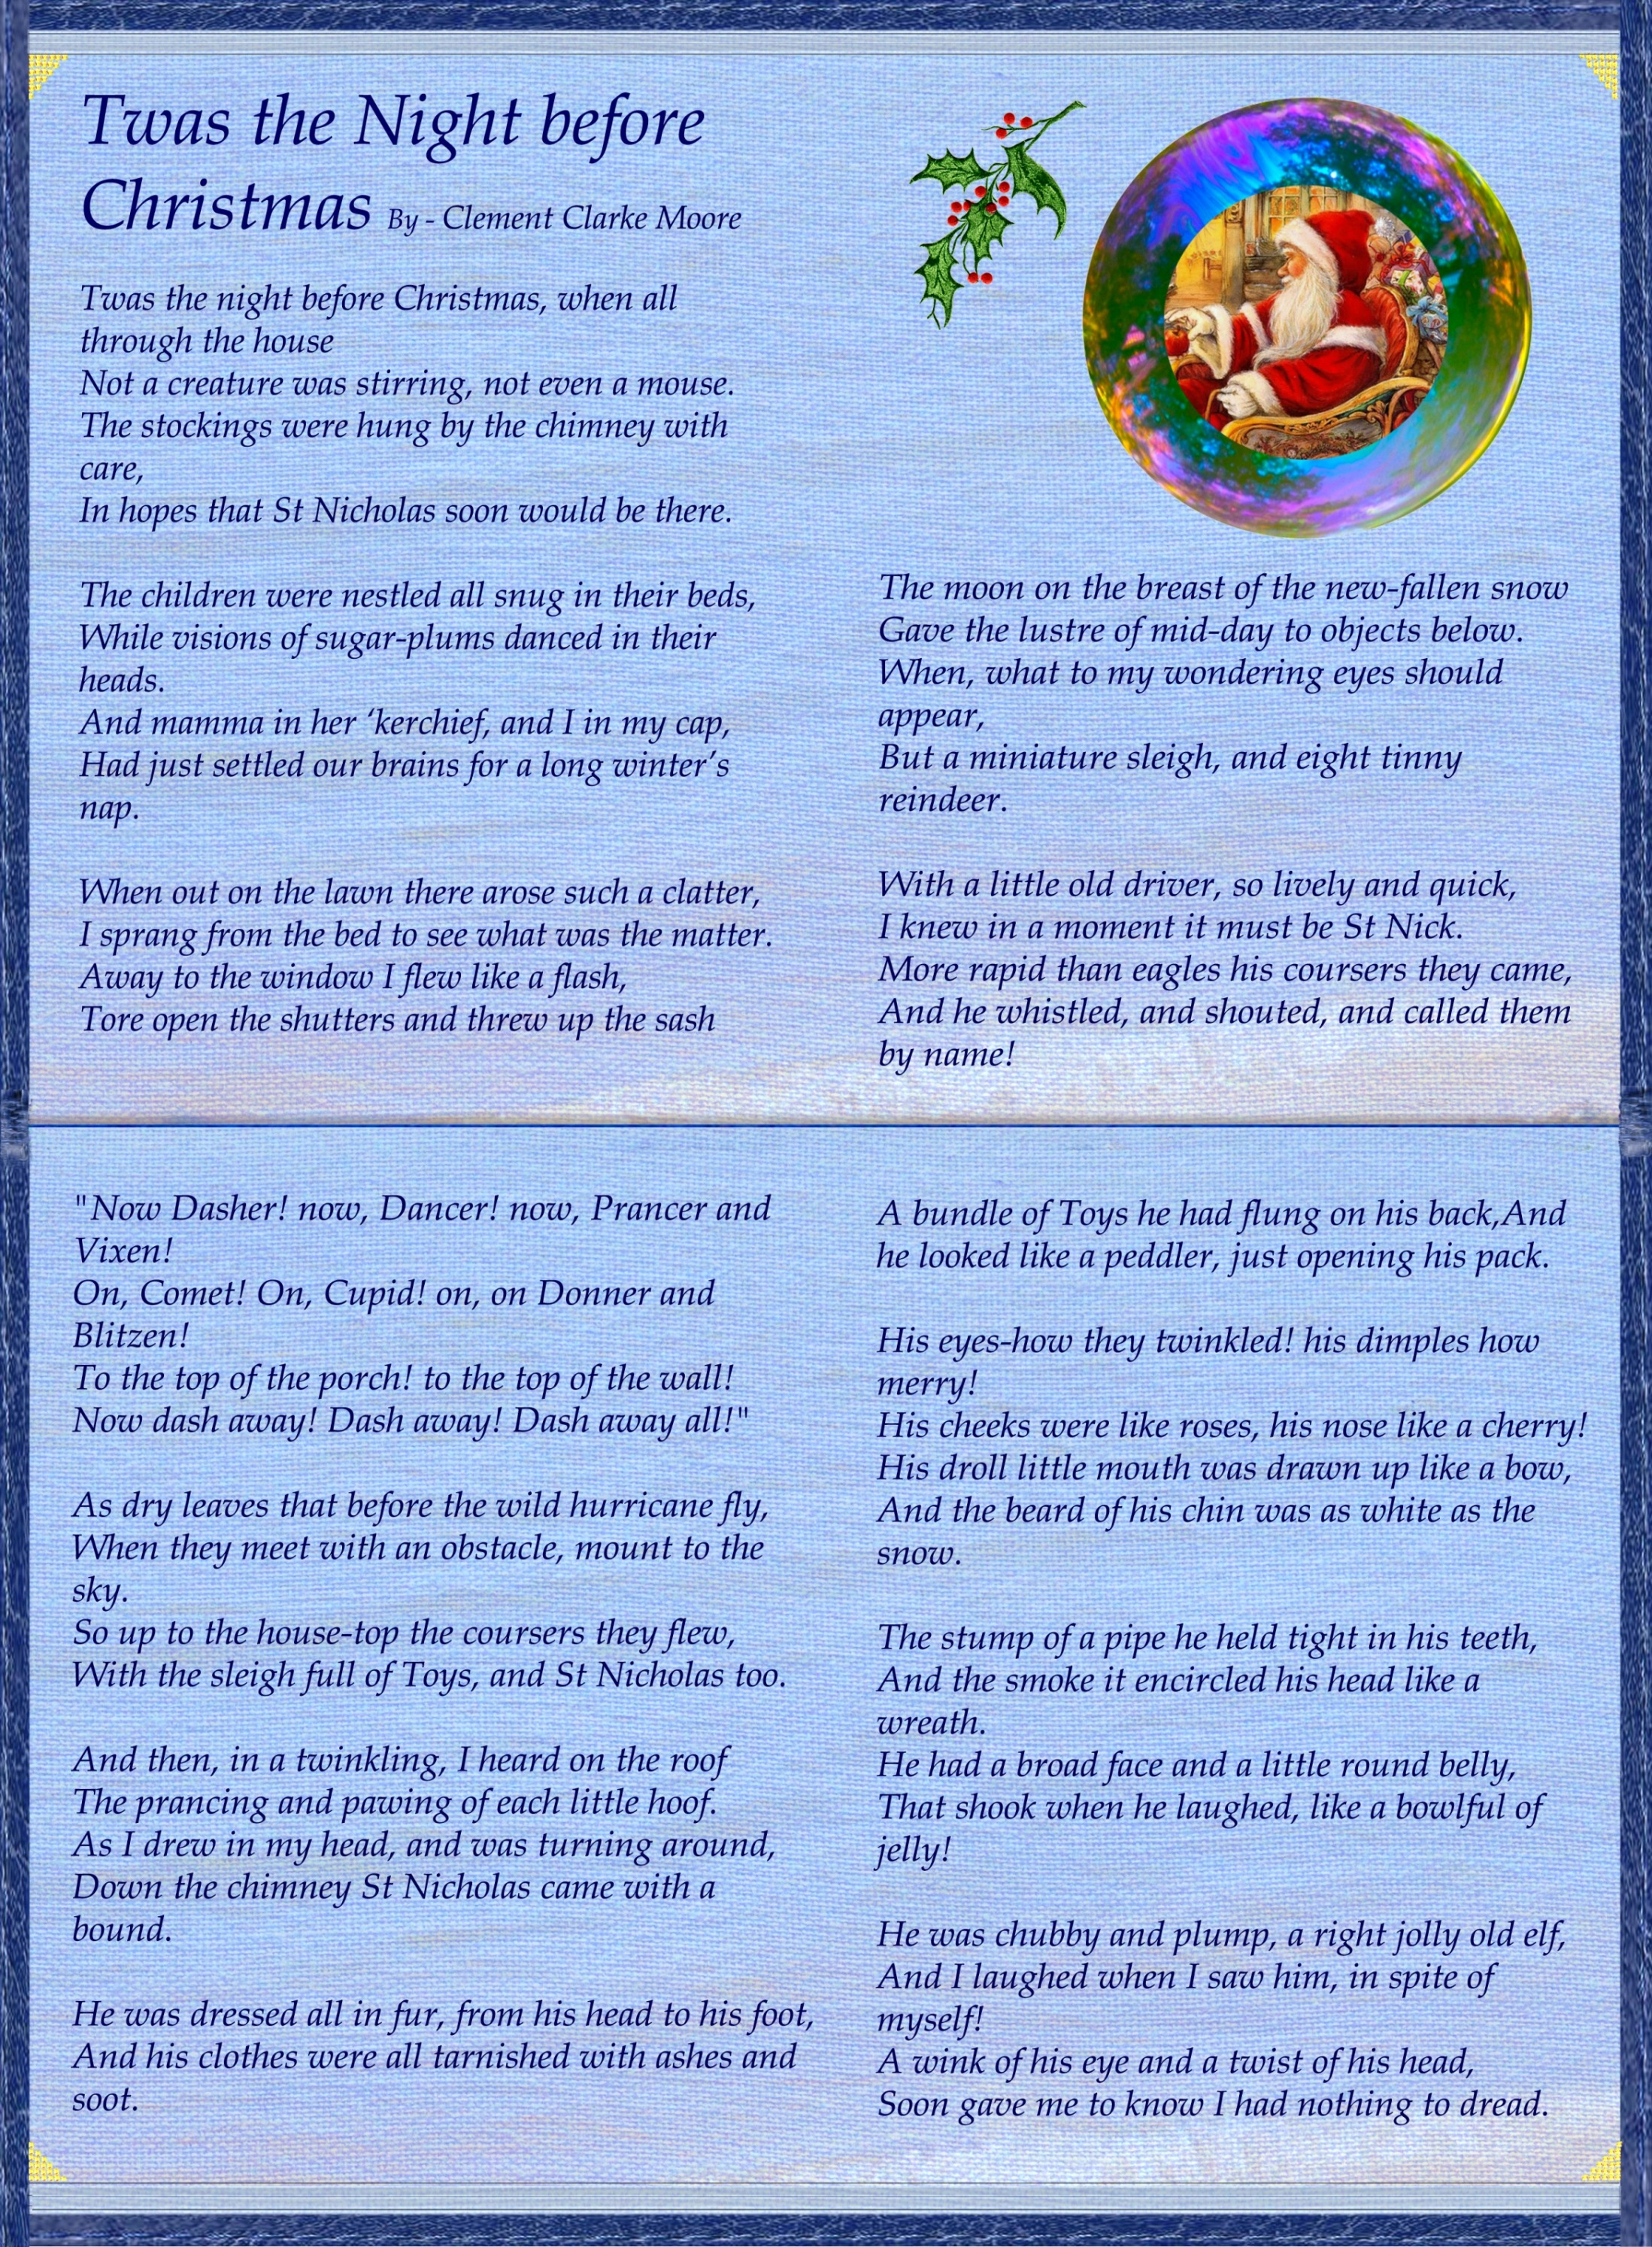 Stupendous image regarding twas the night before christmas printable